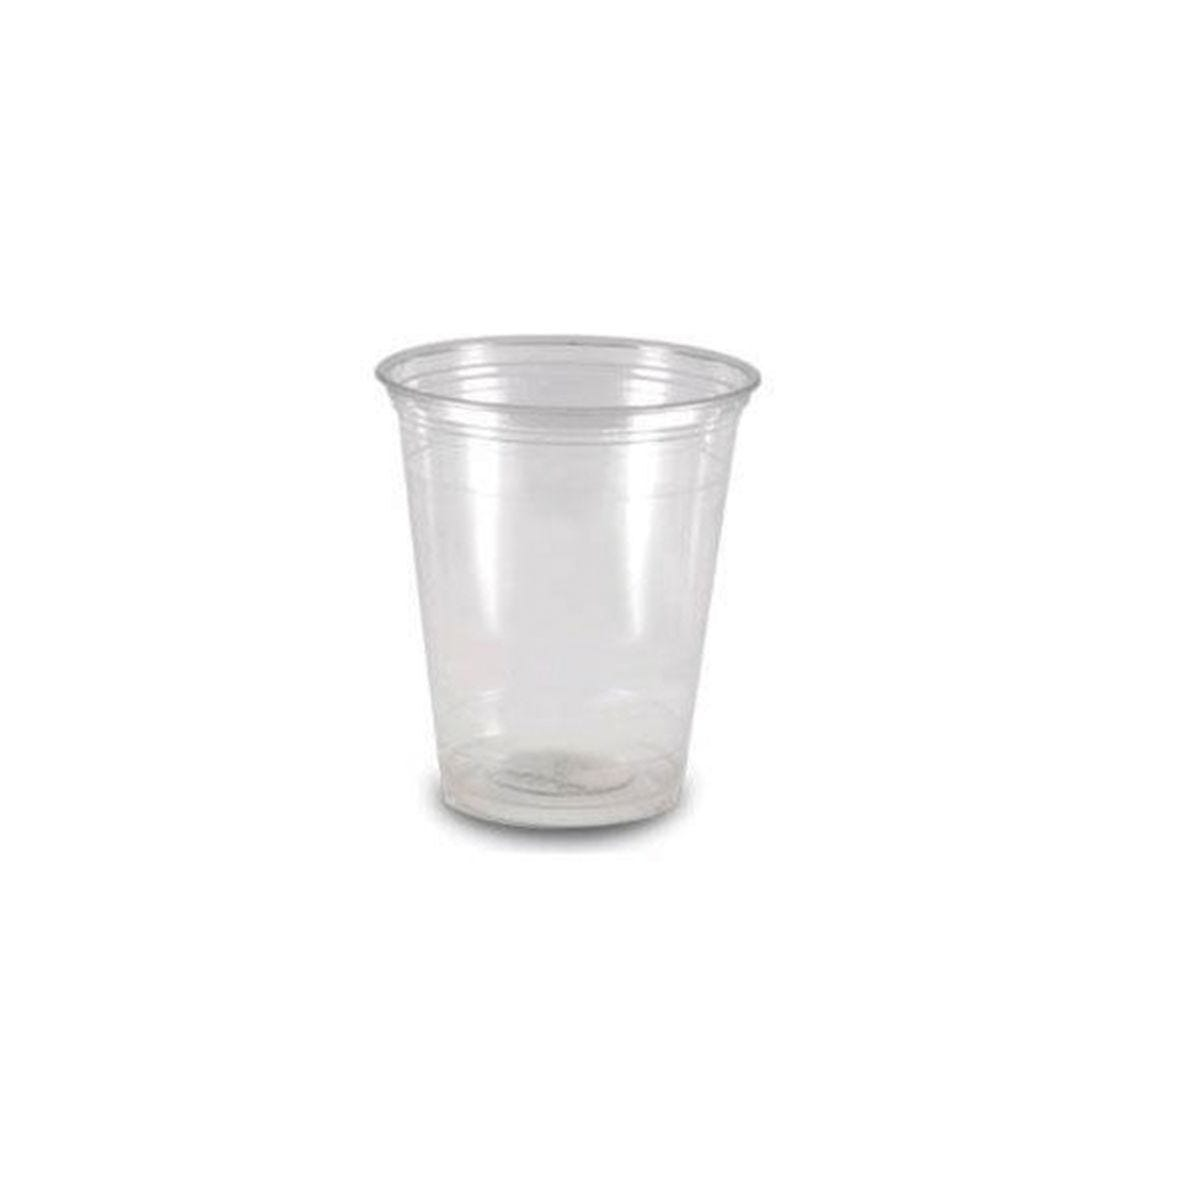 MyCafe Plastic Cups 7oz Clear 1000 Pack